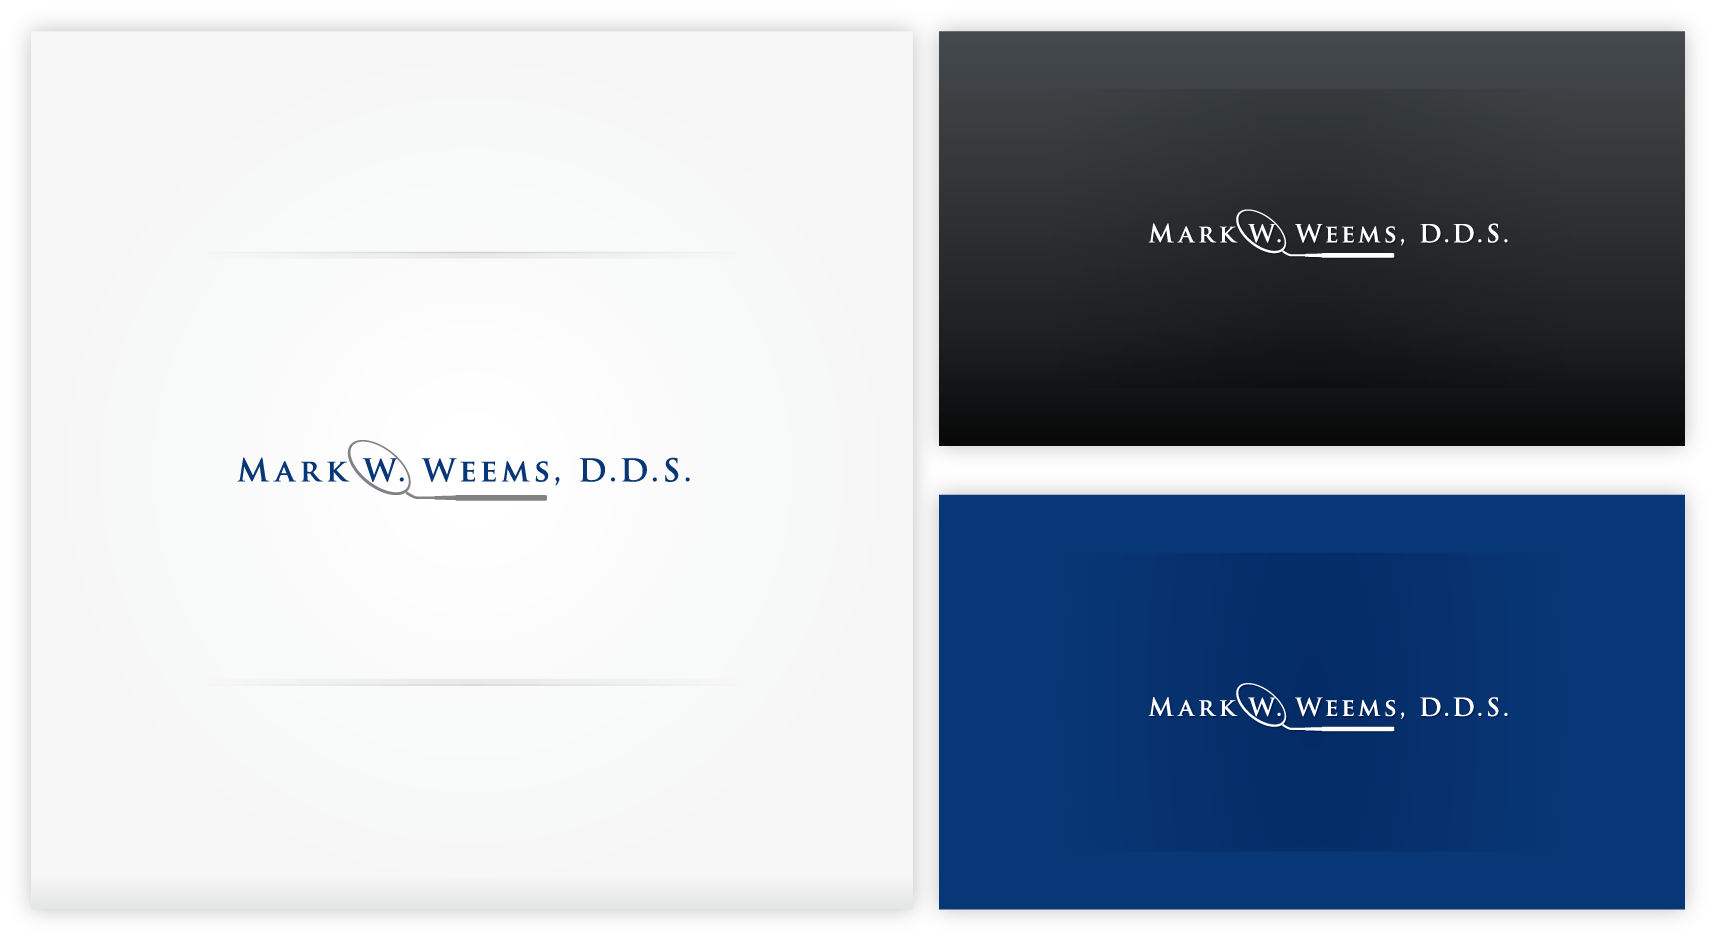 Help Mark W. Weems, D.D.S. with a new logo